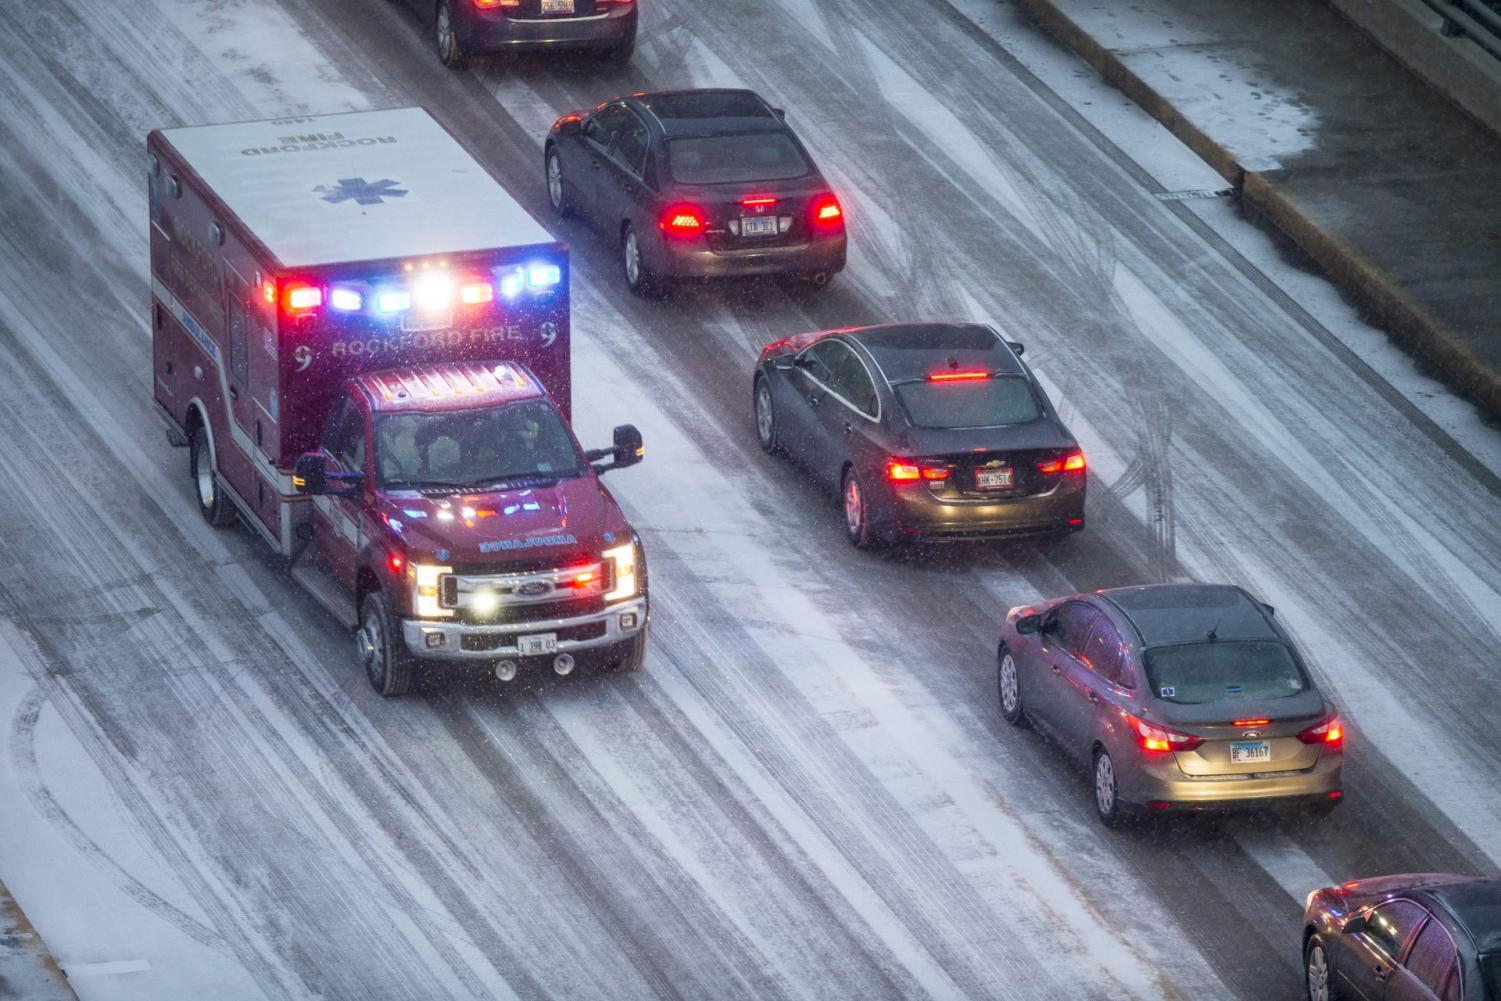 Snow falls as traffic moves slowly along State Street ahead of the Jeff Dunham comedy show at the BMO Harris Bank Center Saturday, Jan. 11, 2020, in downtown Rockford, Ill.